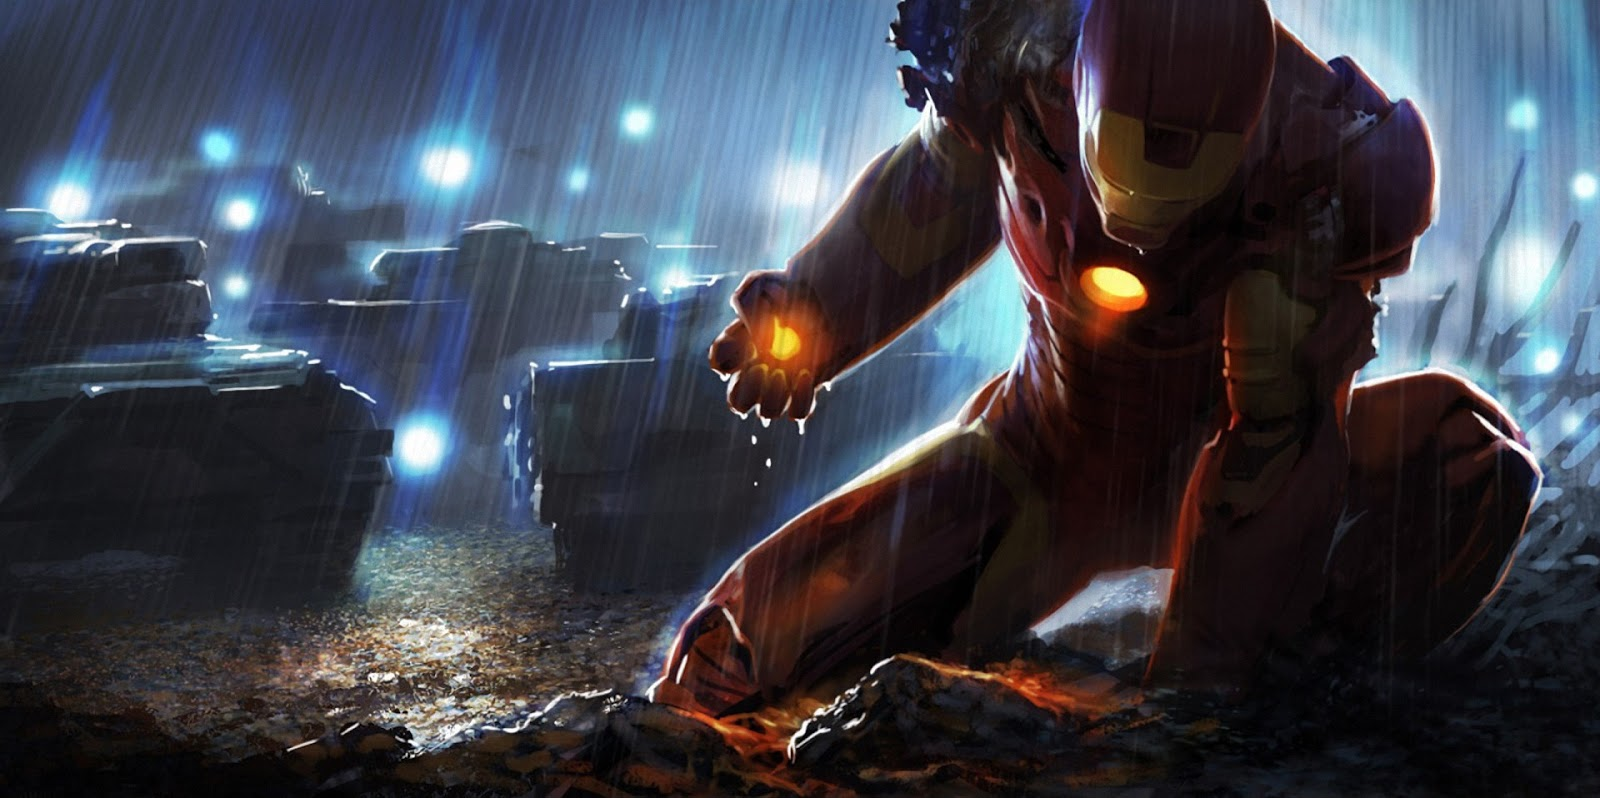 Man Comic Marvel Heroes Superhero Raining Tanks HD Wallpaper Desktop 1600x798